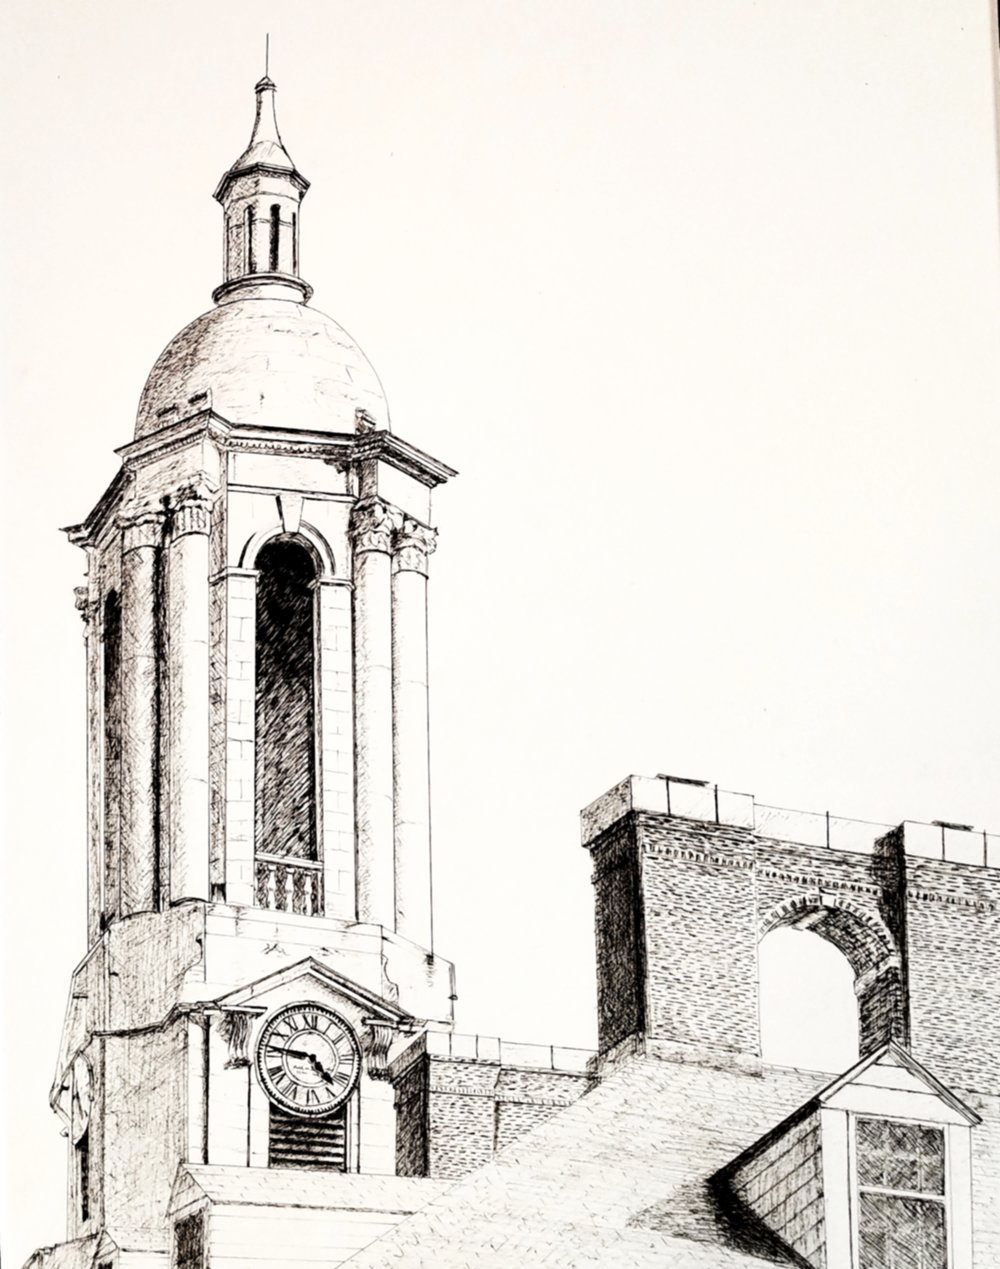 Bell tower of Old Main; pen and ink; 2017